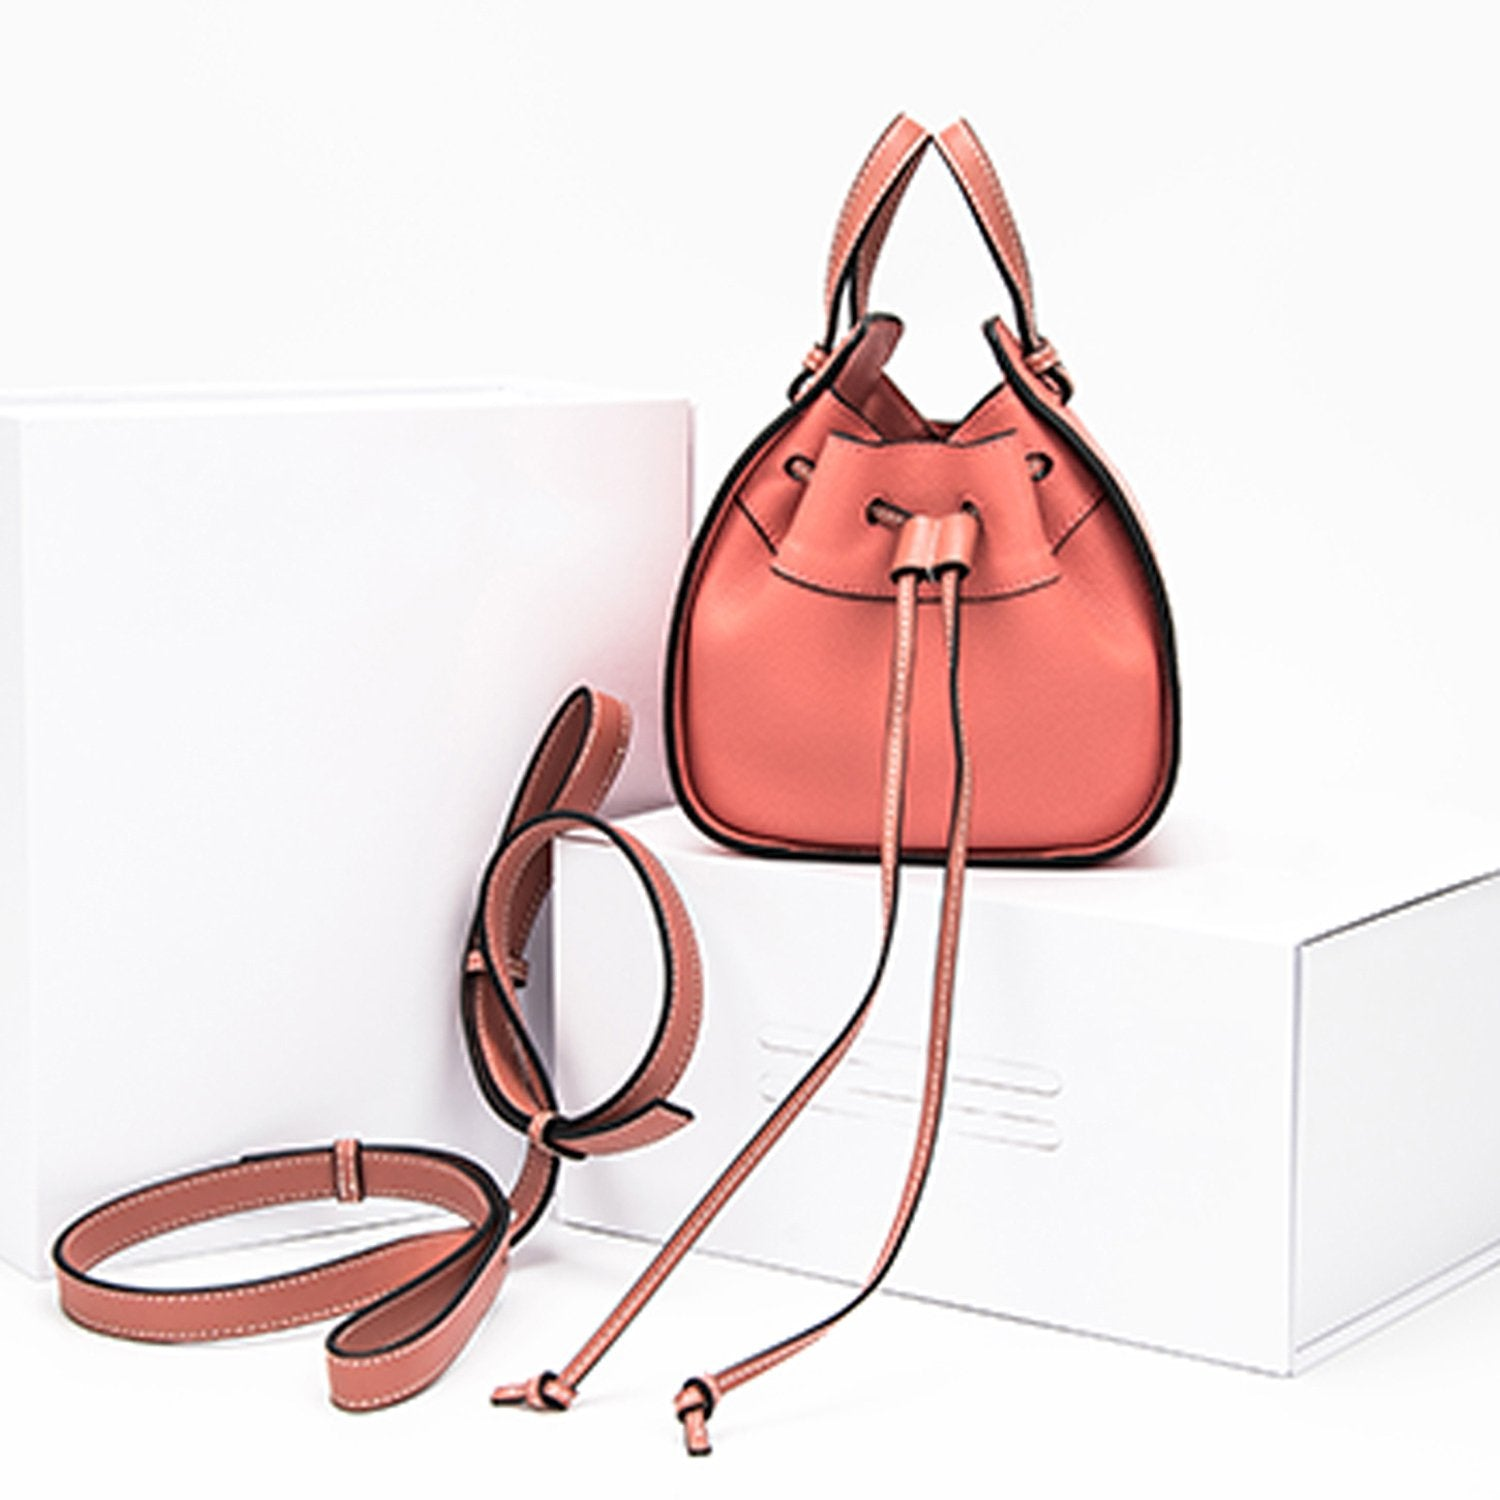 Leather Bucket Bag Slung Handbag